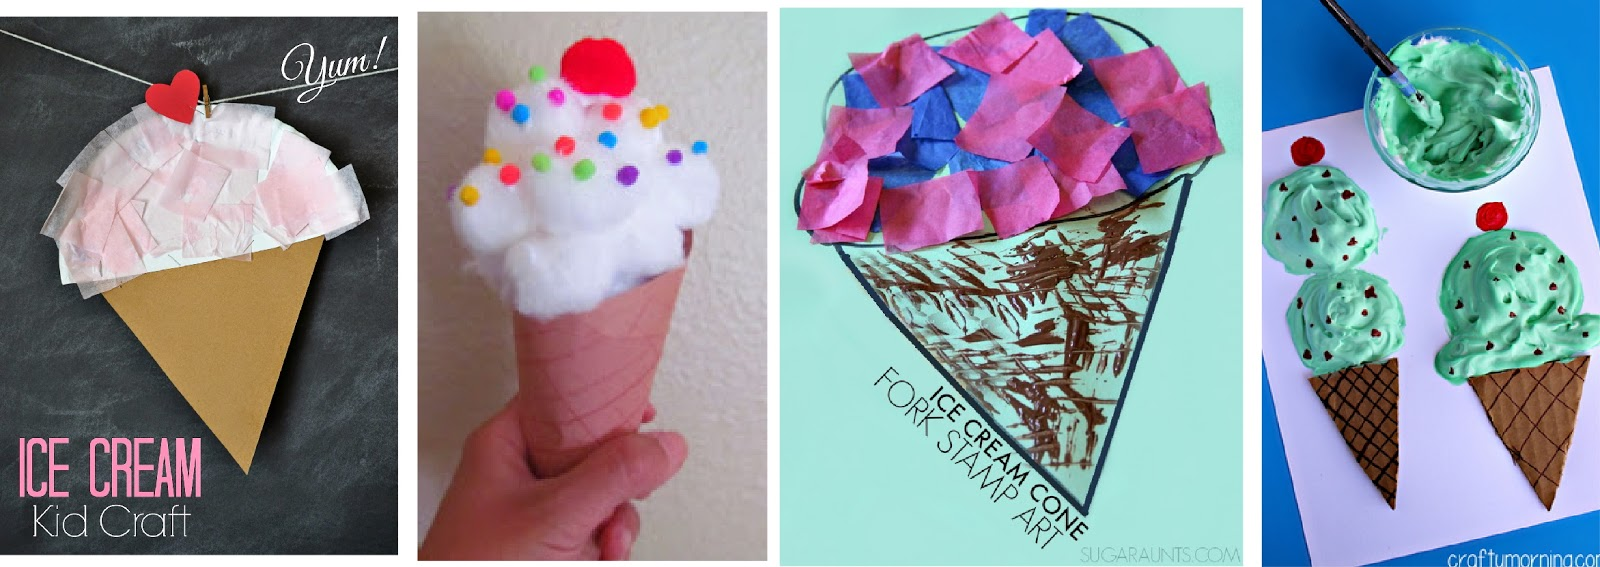 ice cream craft ideas 33 crafts and activities 4726